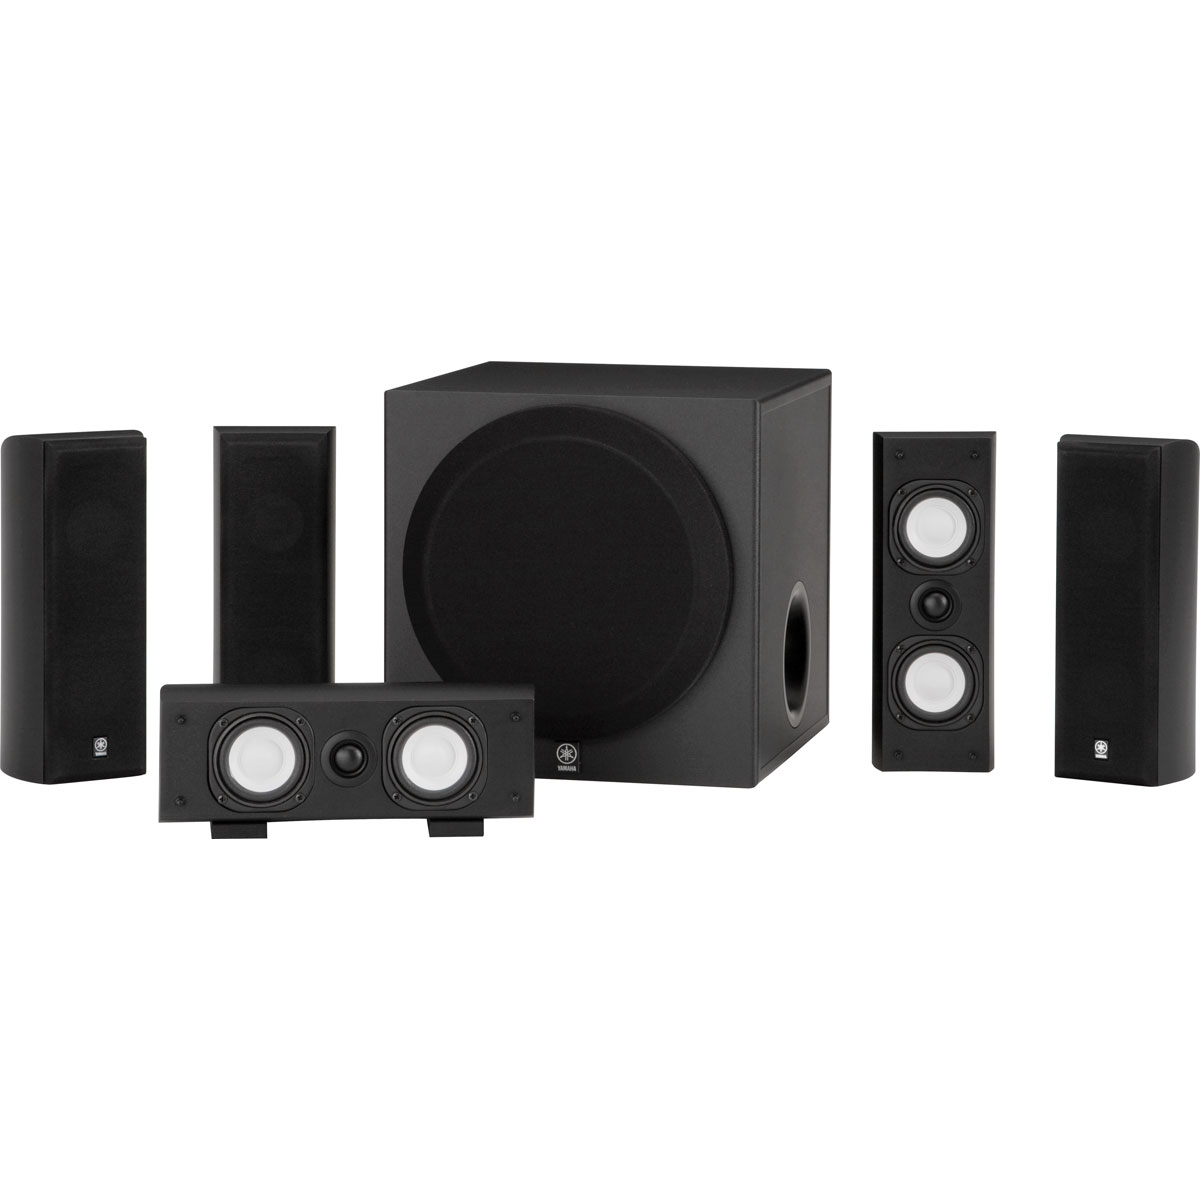 Wallpaper yamaha home theater surround sound systems car for Yamaha sound system